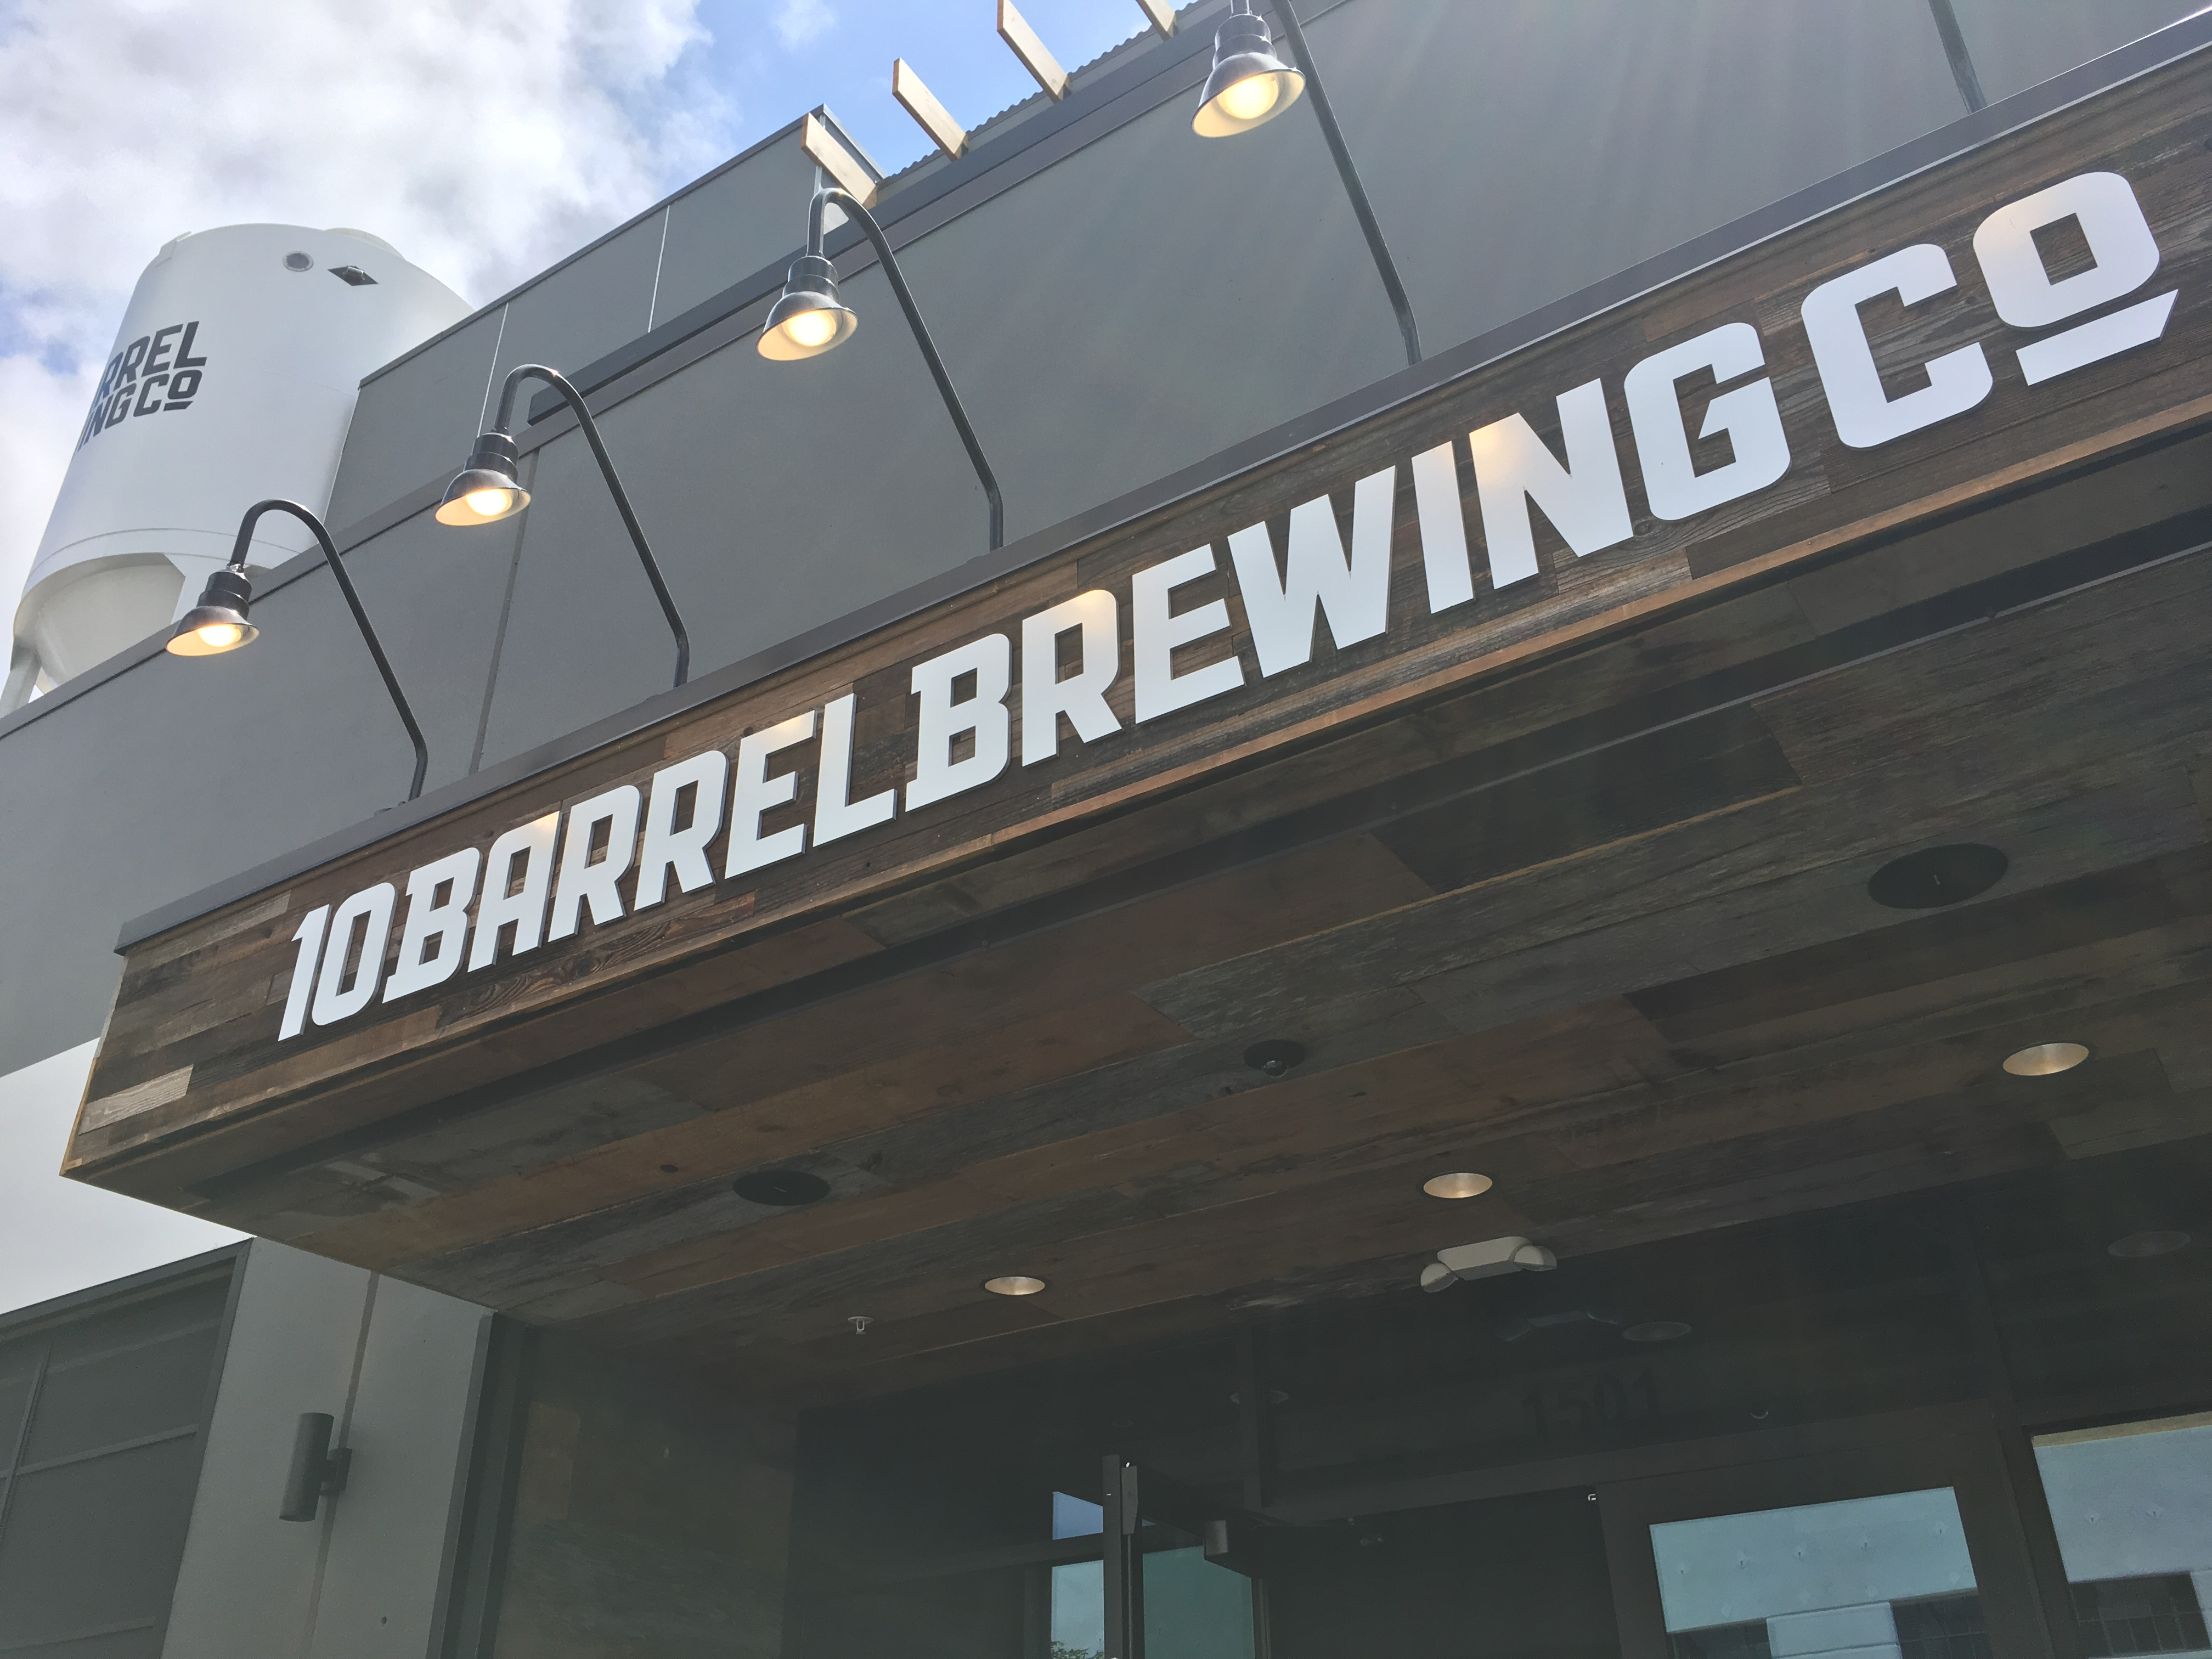 A/V Consulting Tackles the New 10 Barrel Brewing